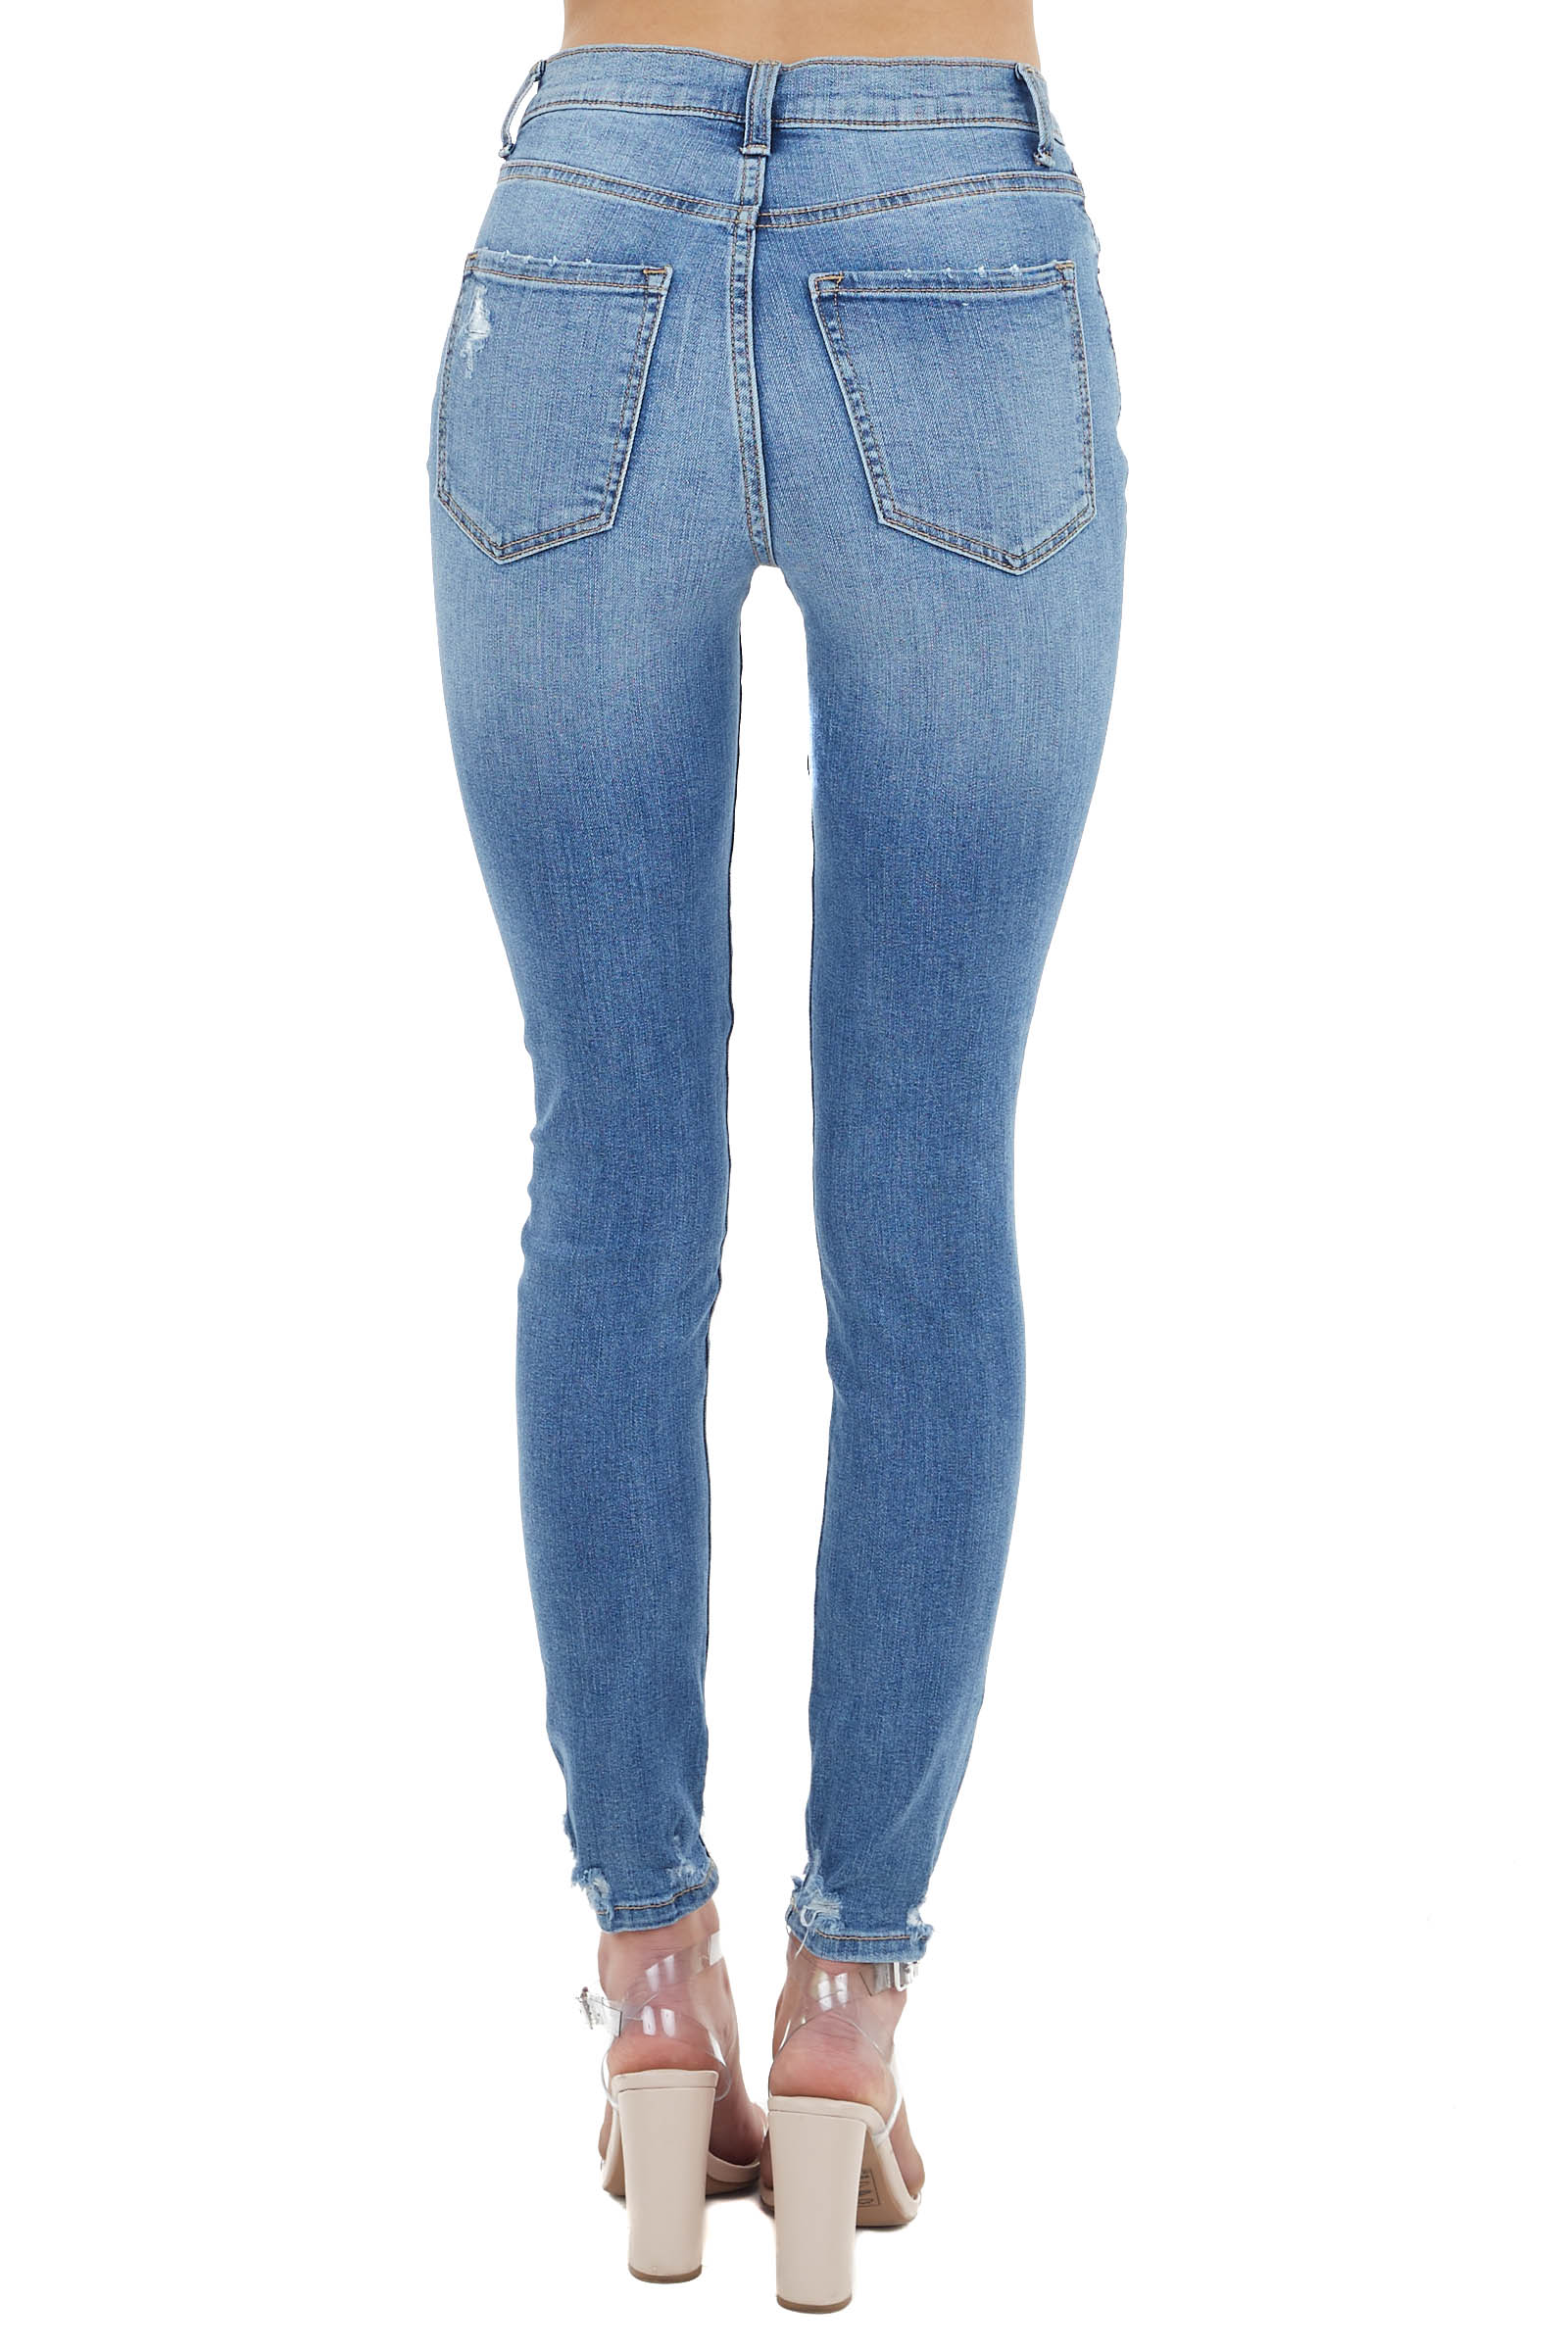 Medium Vintage Wash High Rise Jeans with Light Distressing